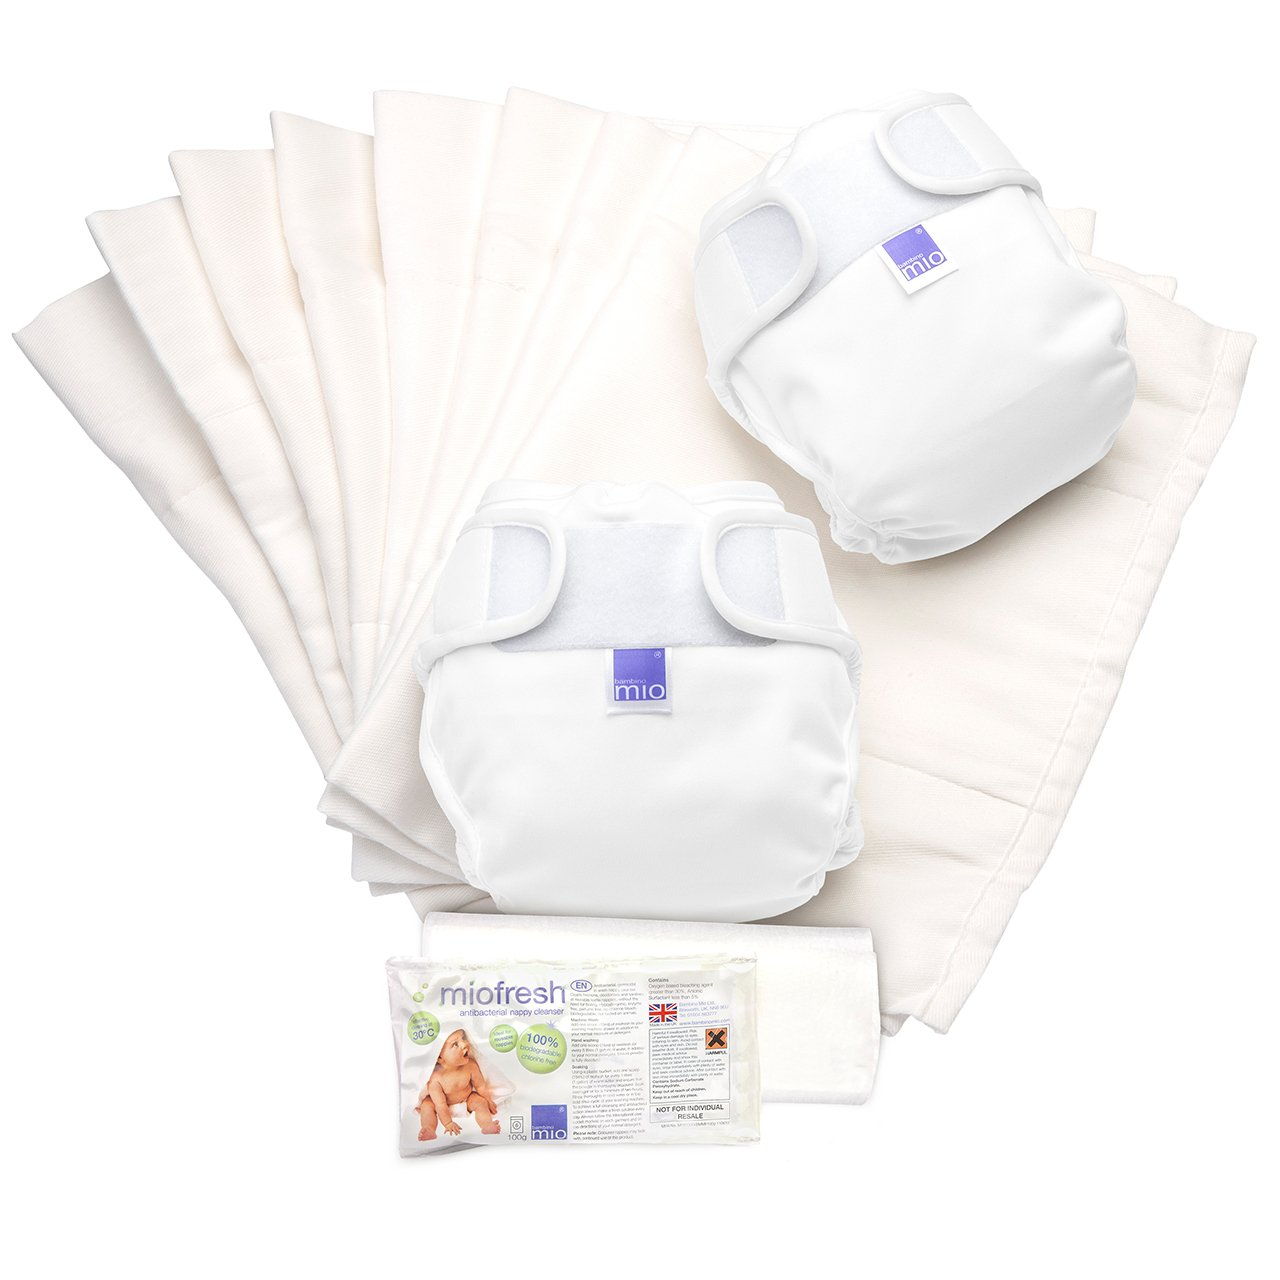 Bambino Mio Miosoft Reusable Nappy Set, Dream Traveller A, Size 2 Bambino Mio UK NS2 DTA